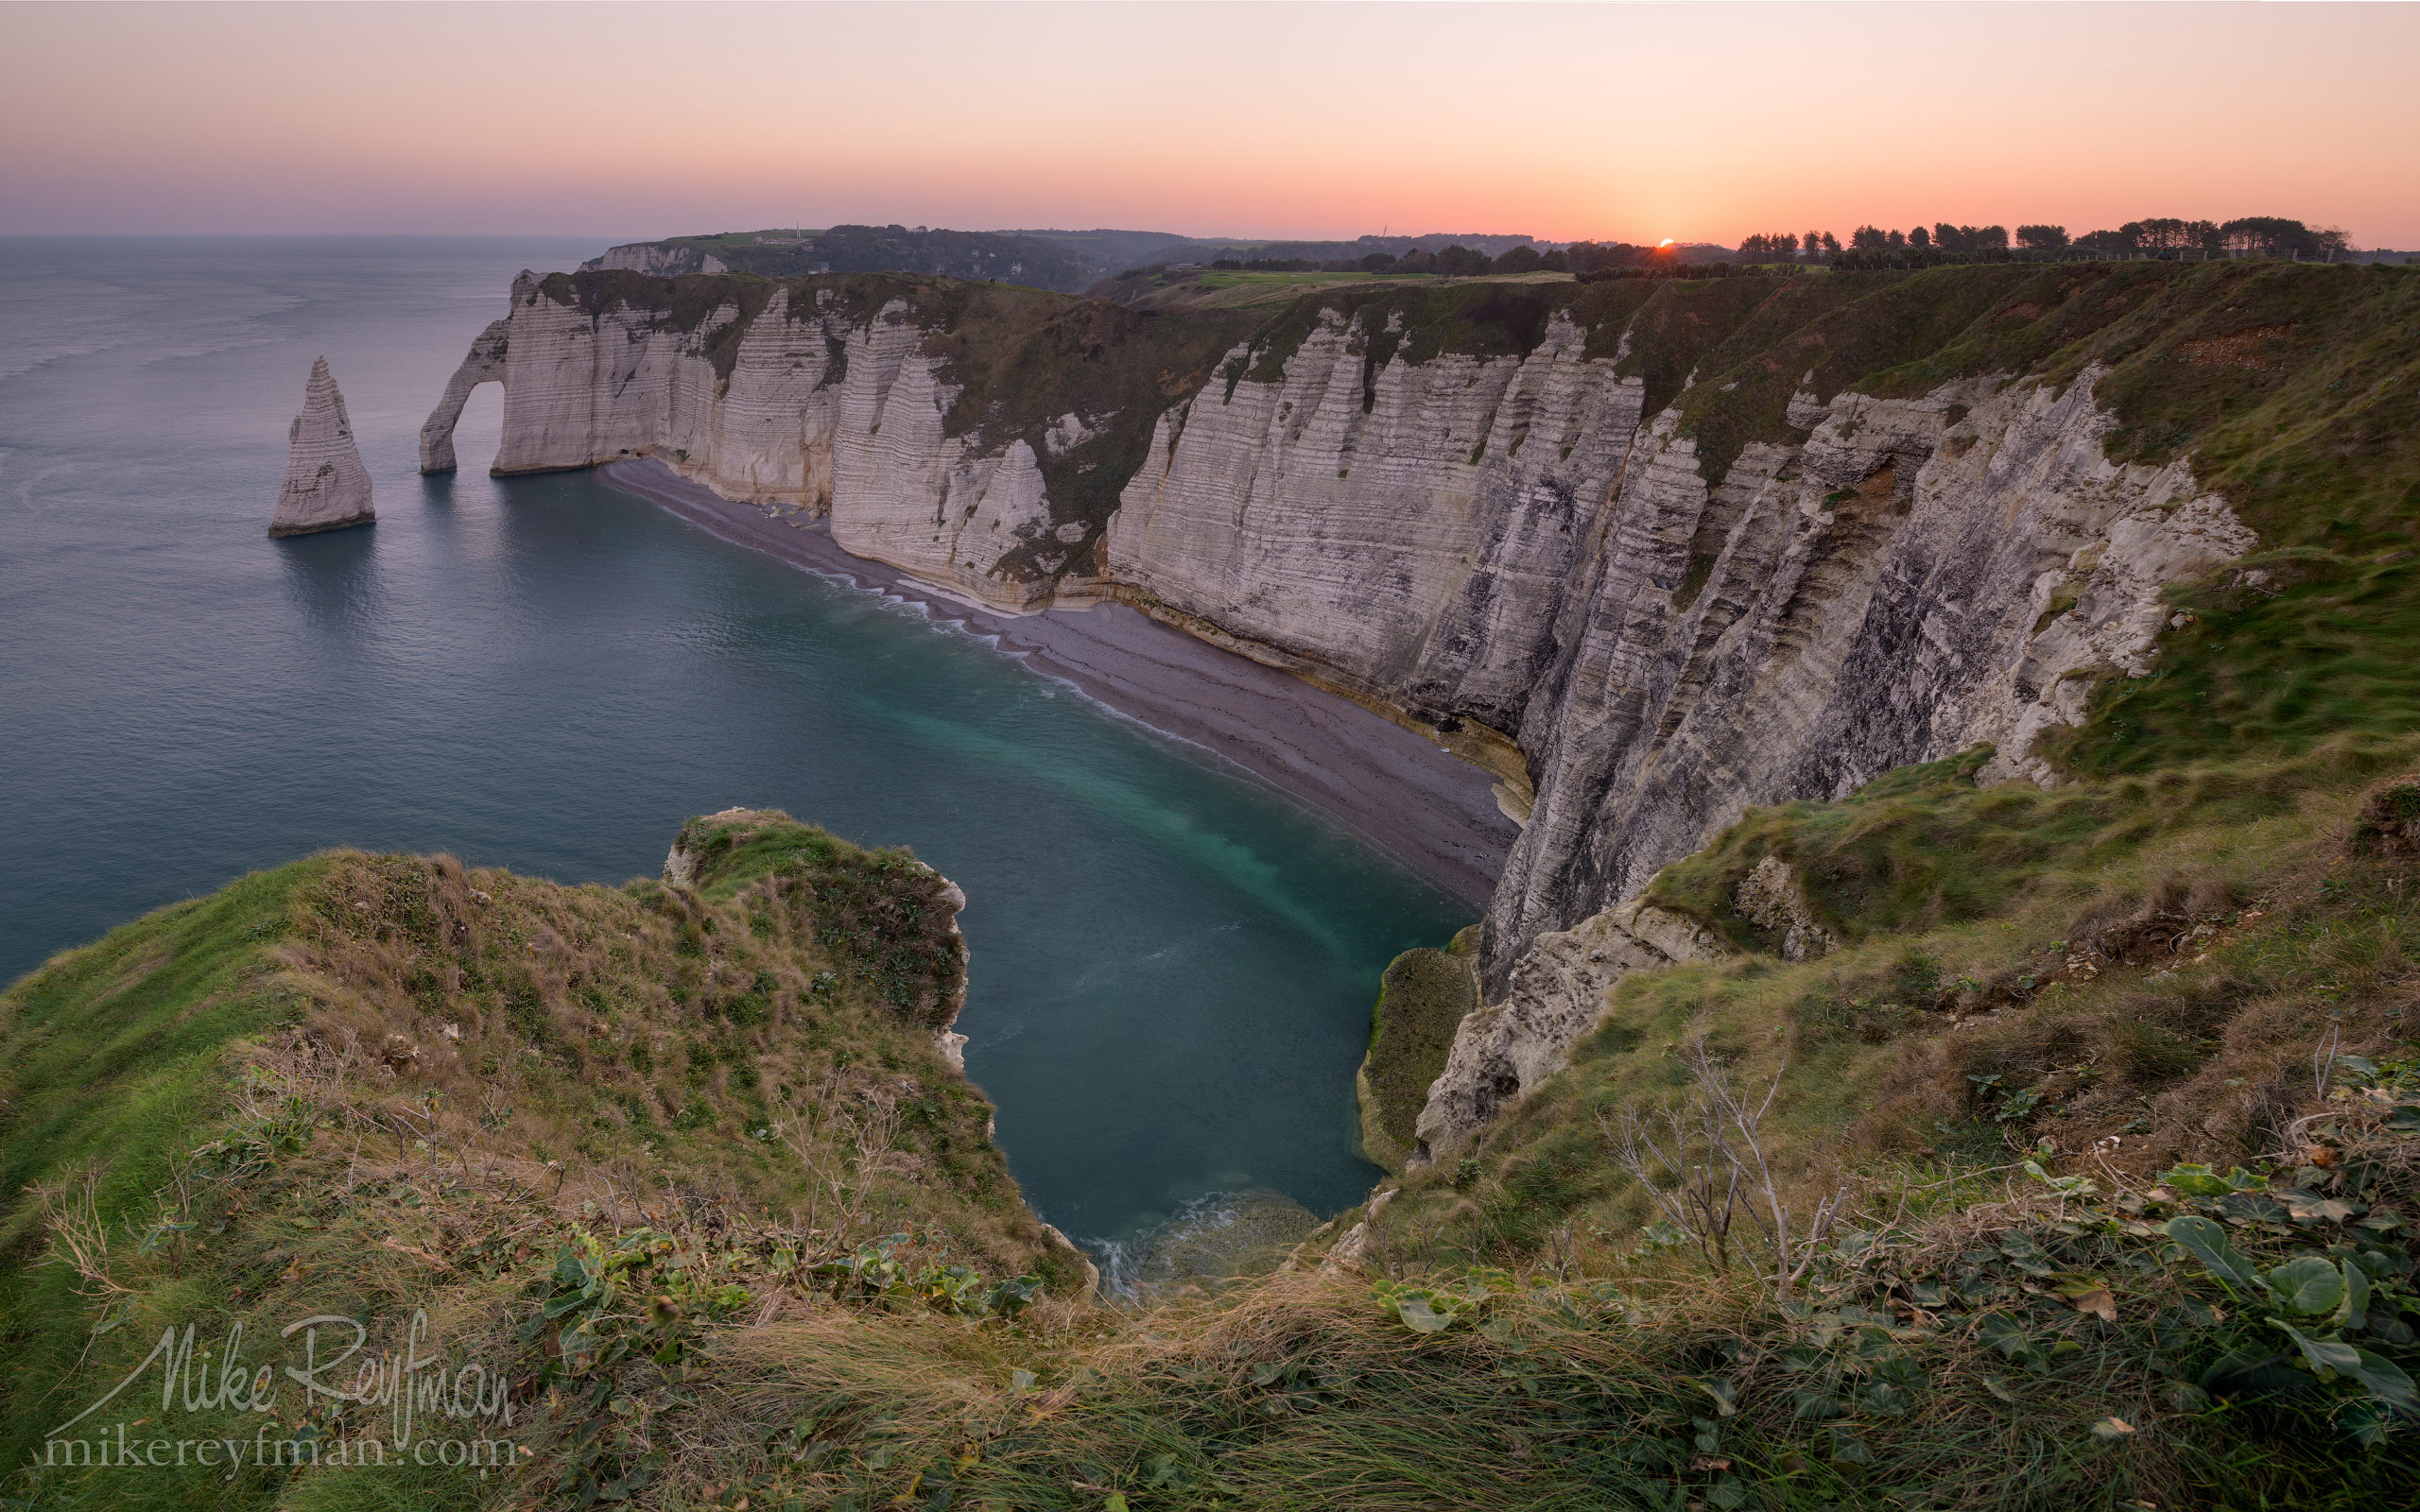 Arch Porte d'Aval and L'Aiguille - the Needle. Cote d'Albatre – The Alabaster Coast. Ertretat, Normandy, France ET1-MR50A0180 - White Chalk Cliffs and Arches of Alabaster Coast. Etretat, Upper Normandy, France - Mike Reyfman Photography